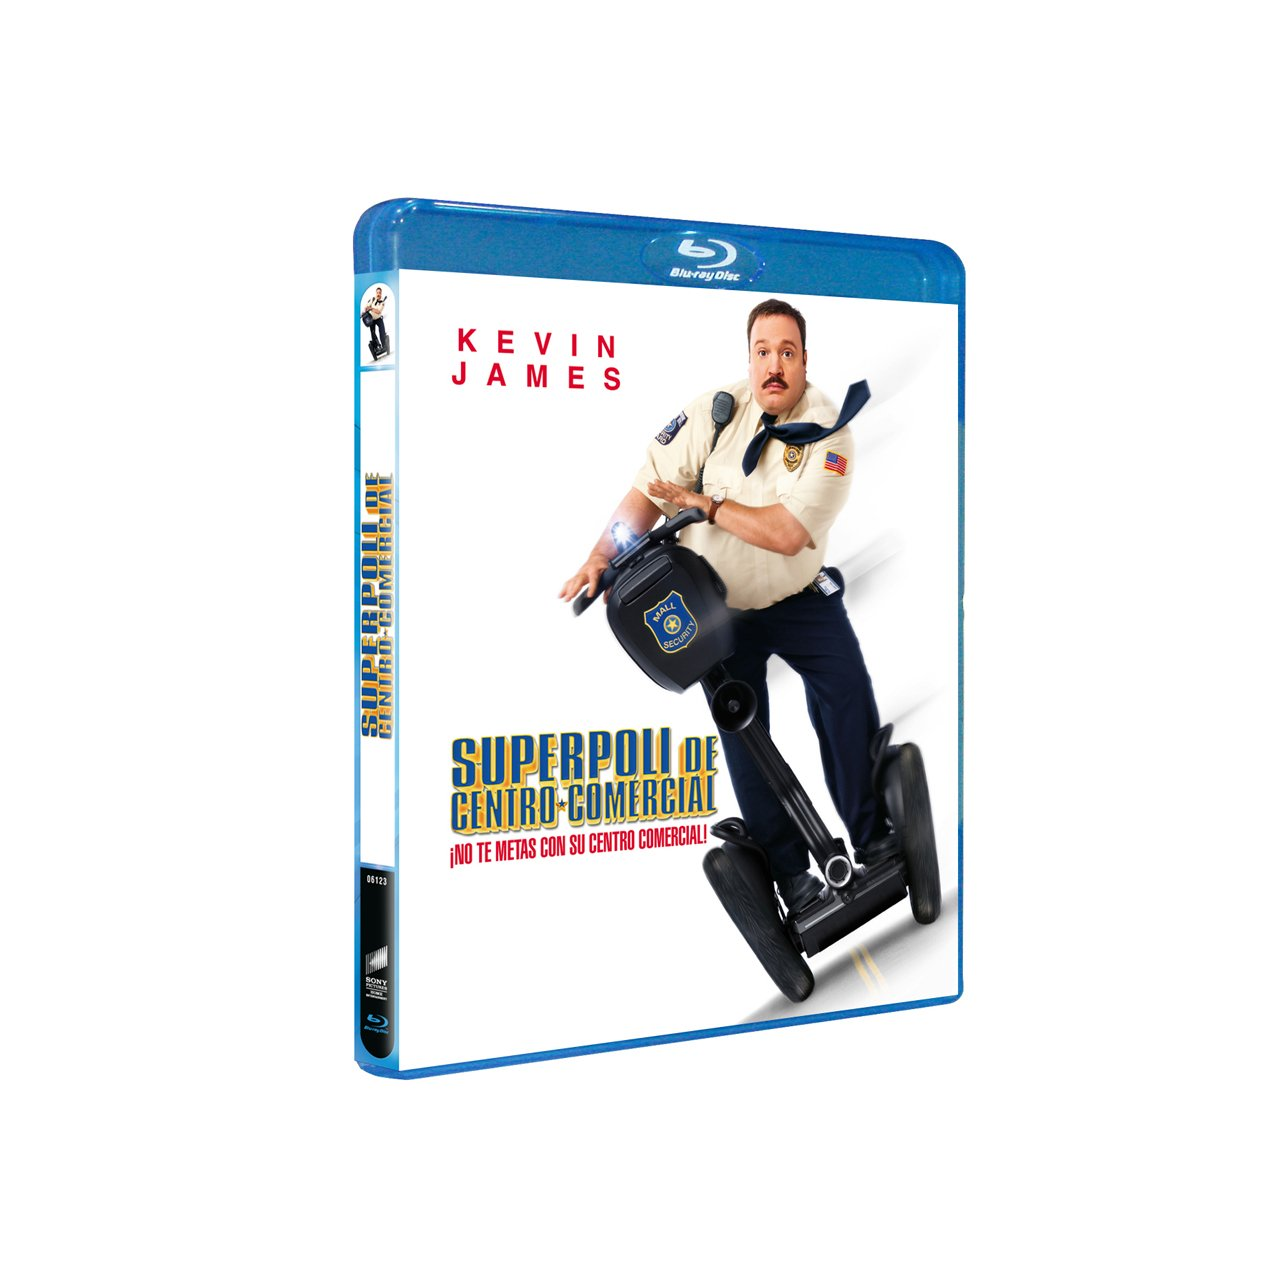 Amazon.com: Superpoli De Centro Comercial (Blu-Ray) (Import Movie) (European Format - Zone B2) (2009) Kevin James; Steve Carr: Movies & TV